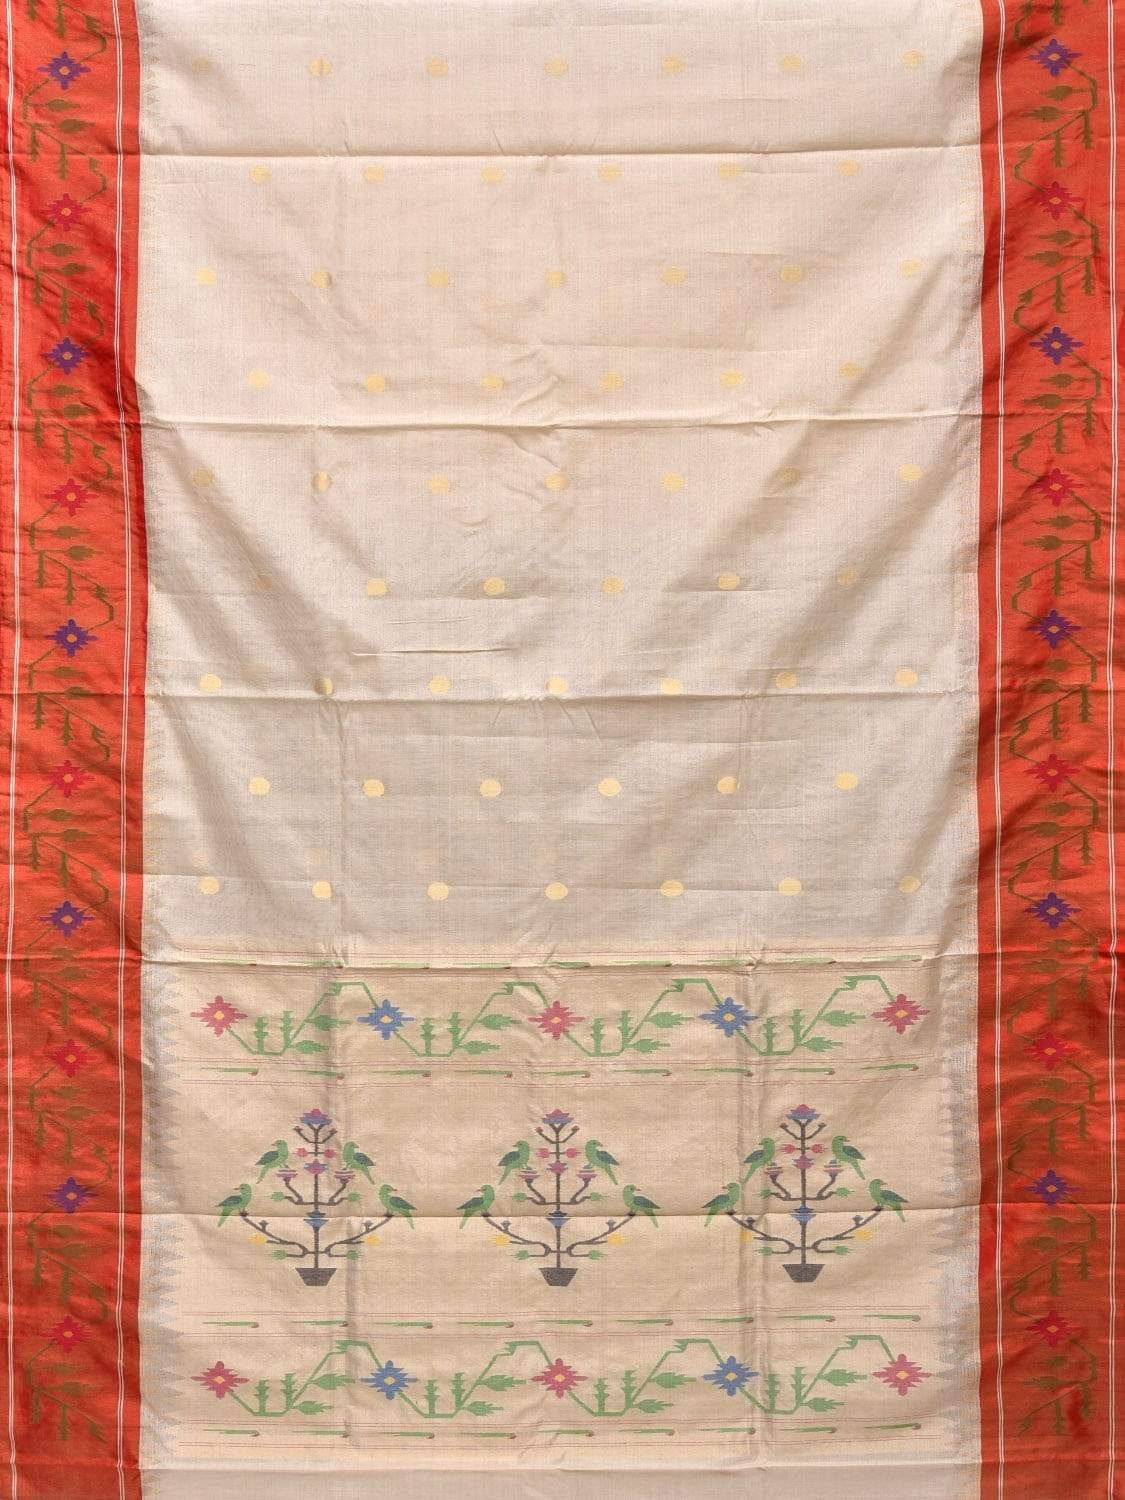 White Paithani Tussar Cotton Handloom Saree with Body Zari Buta and Border Design p0344